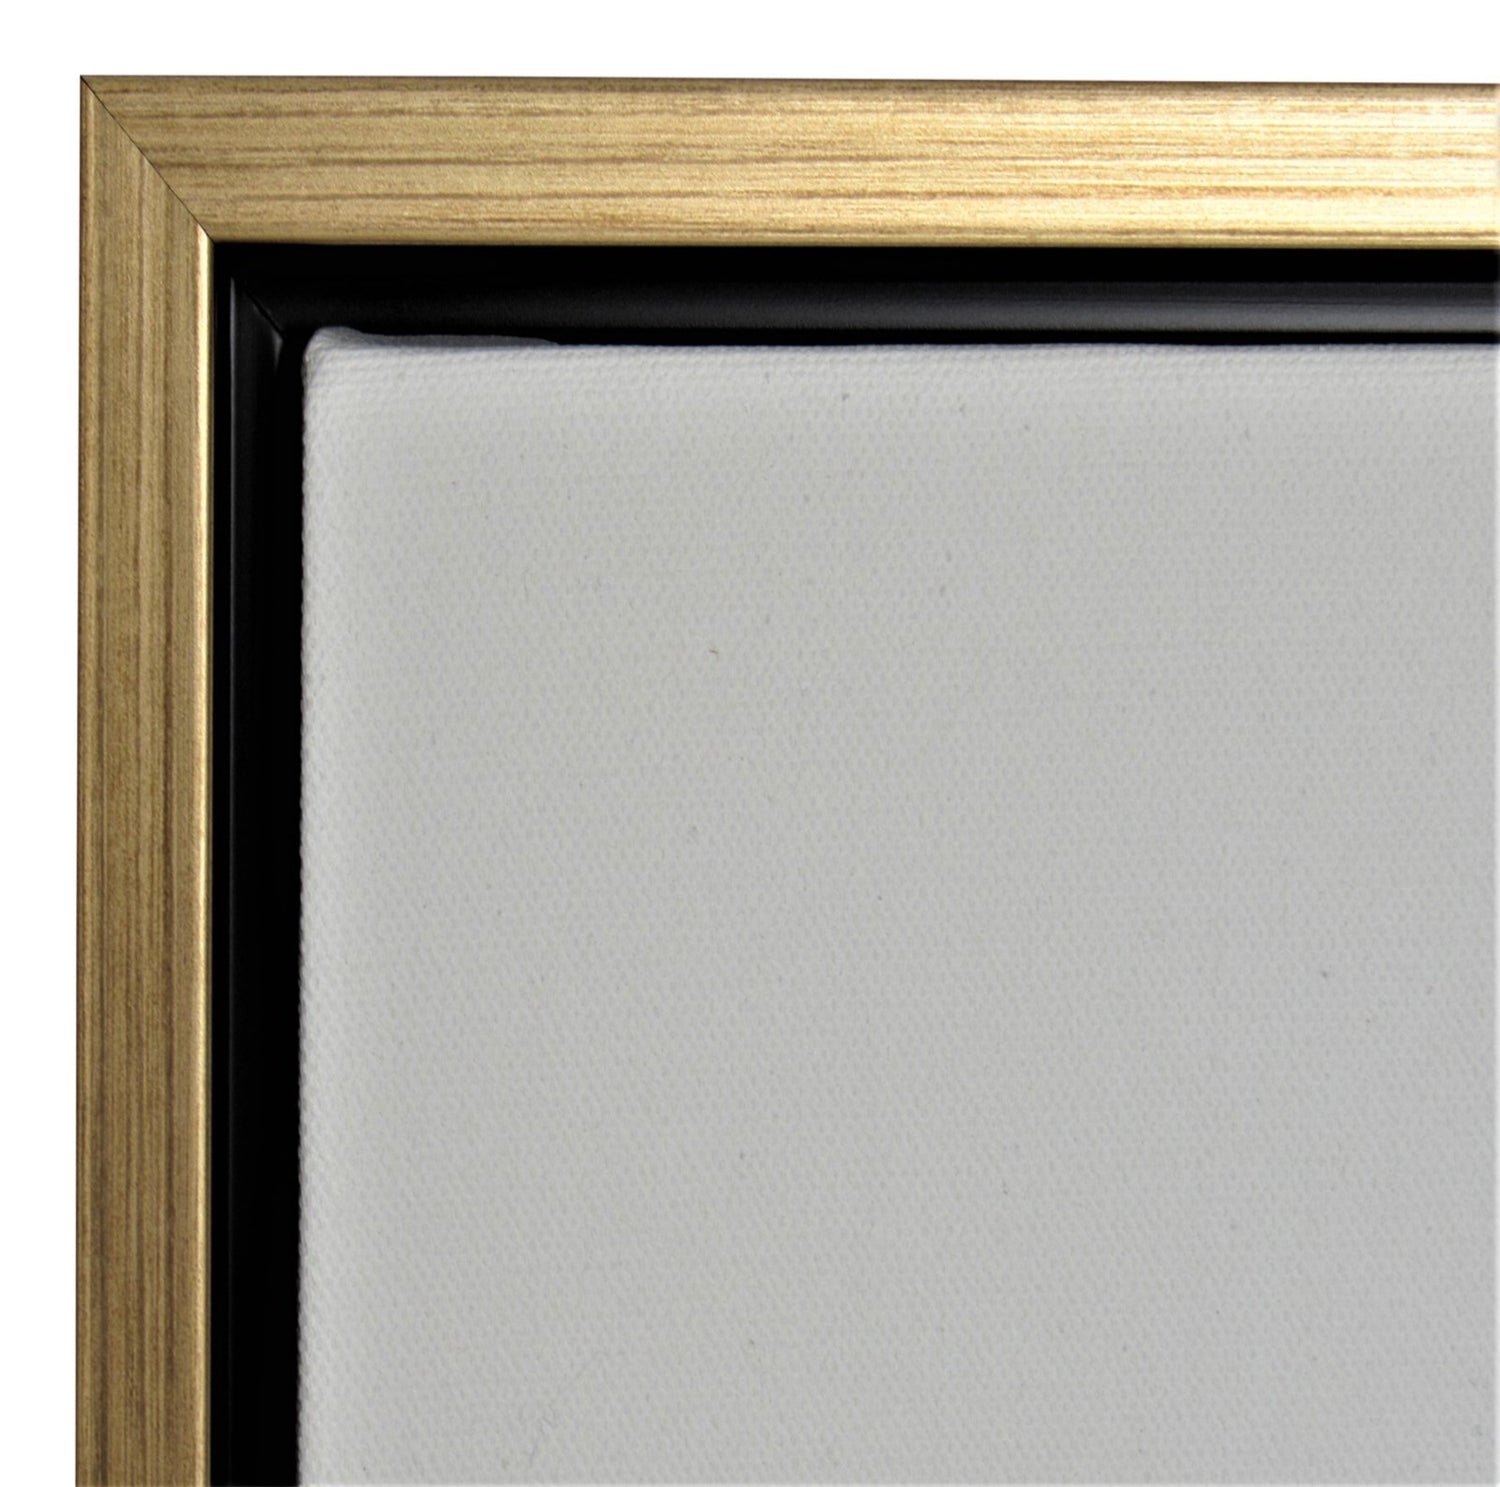 "Gold Floater Picture Frame 1 3/8"" Deep, for 3/4"" Canvas"